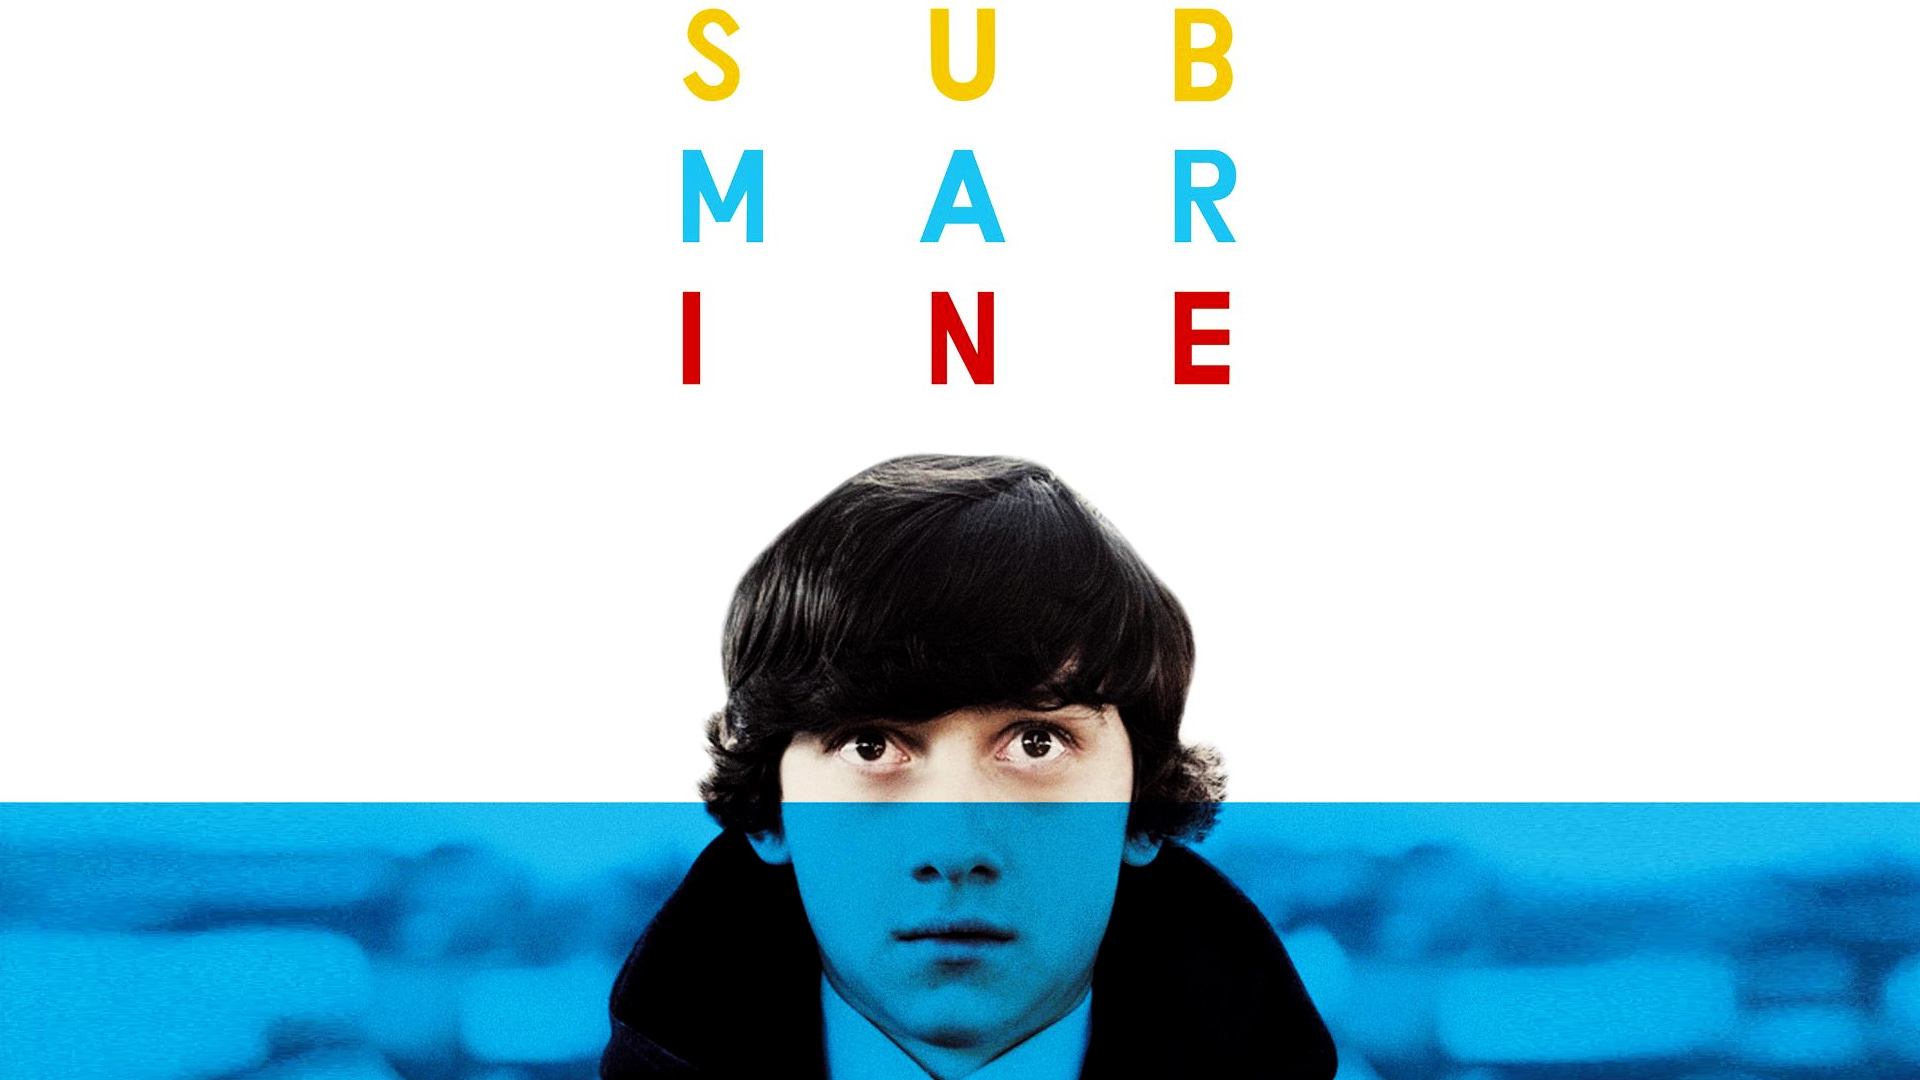 wallpaper-submarine-33640996-1920-1080